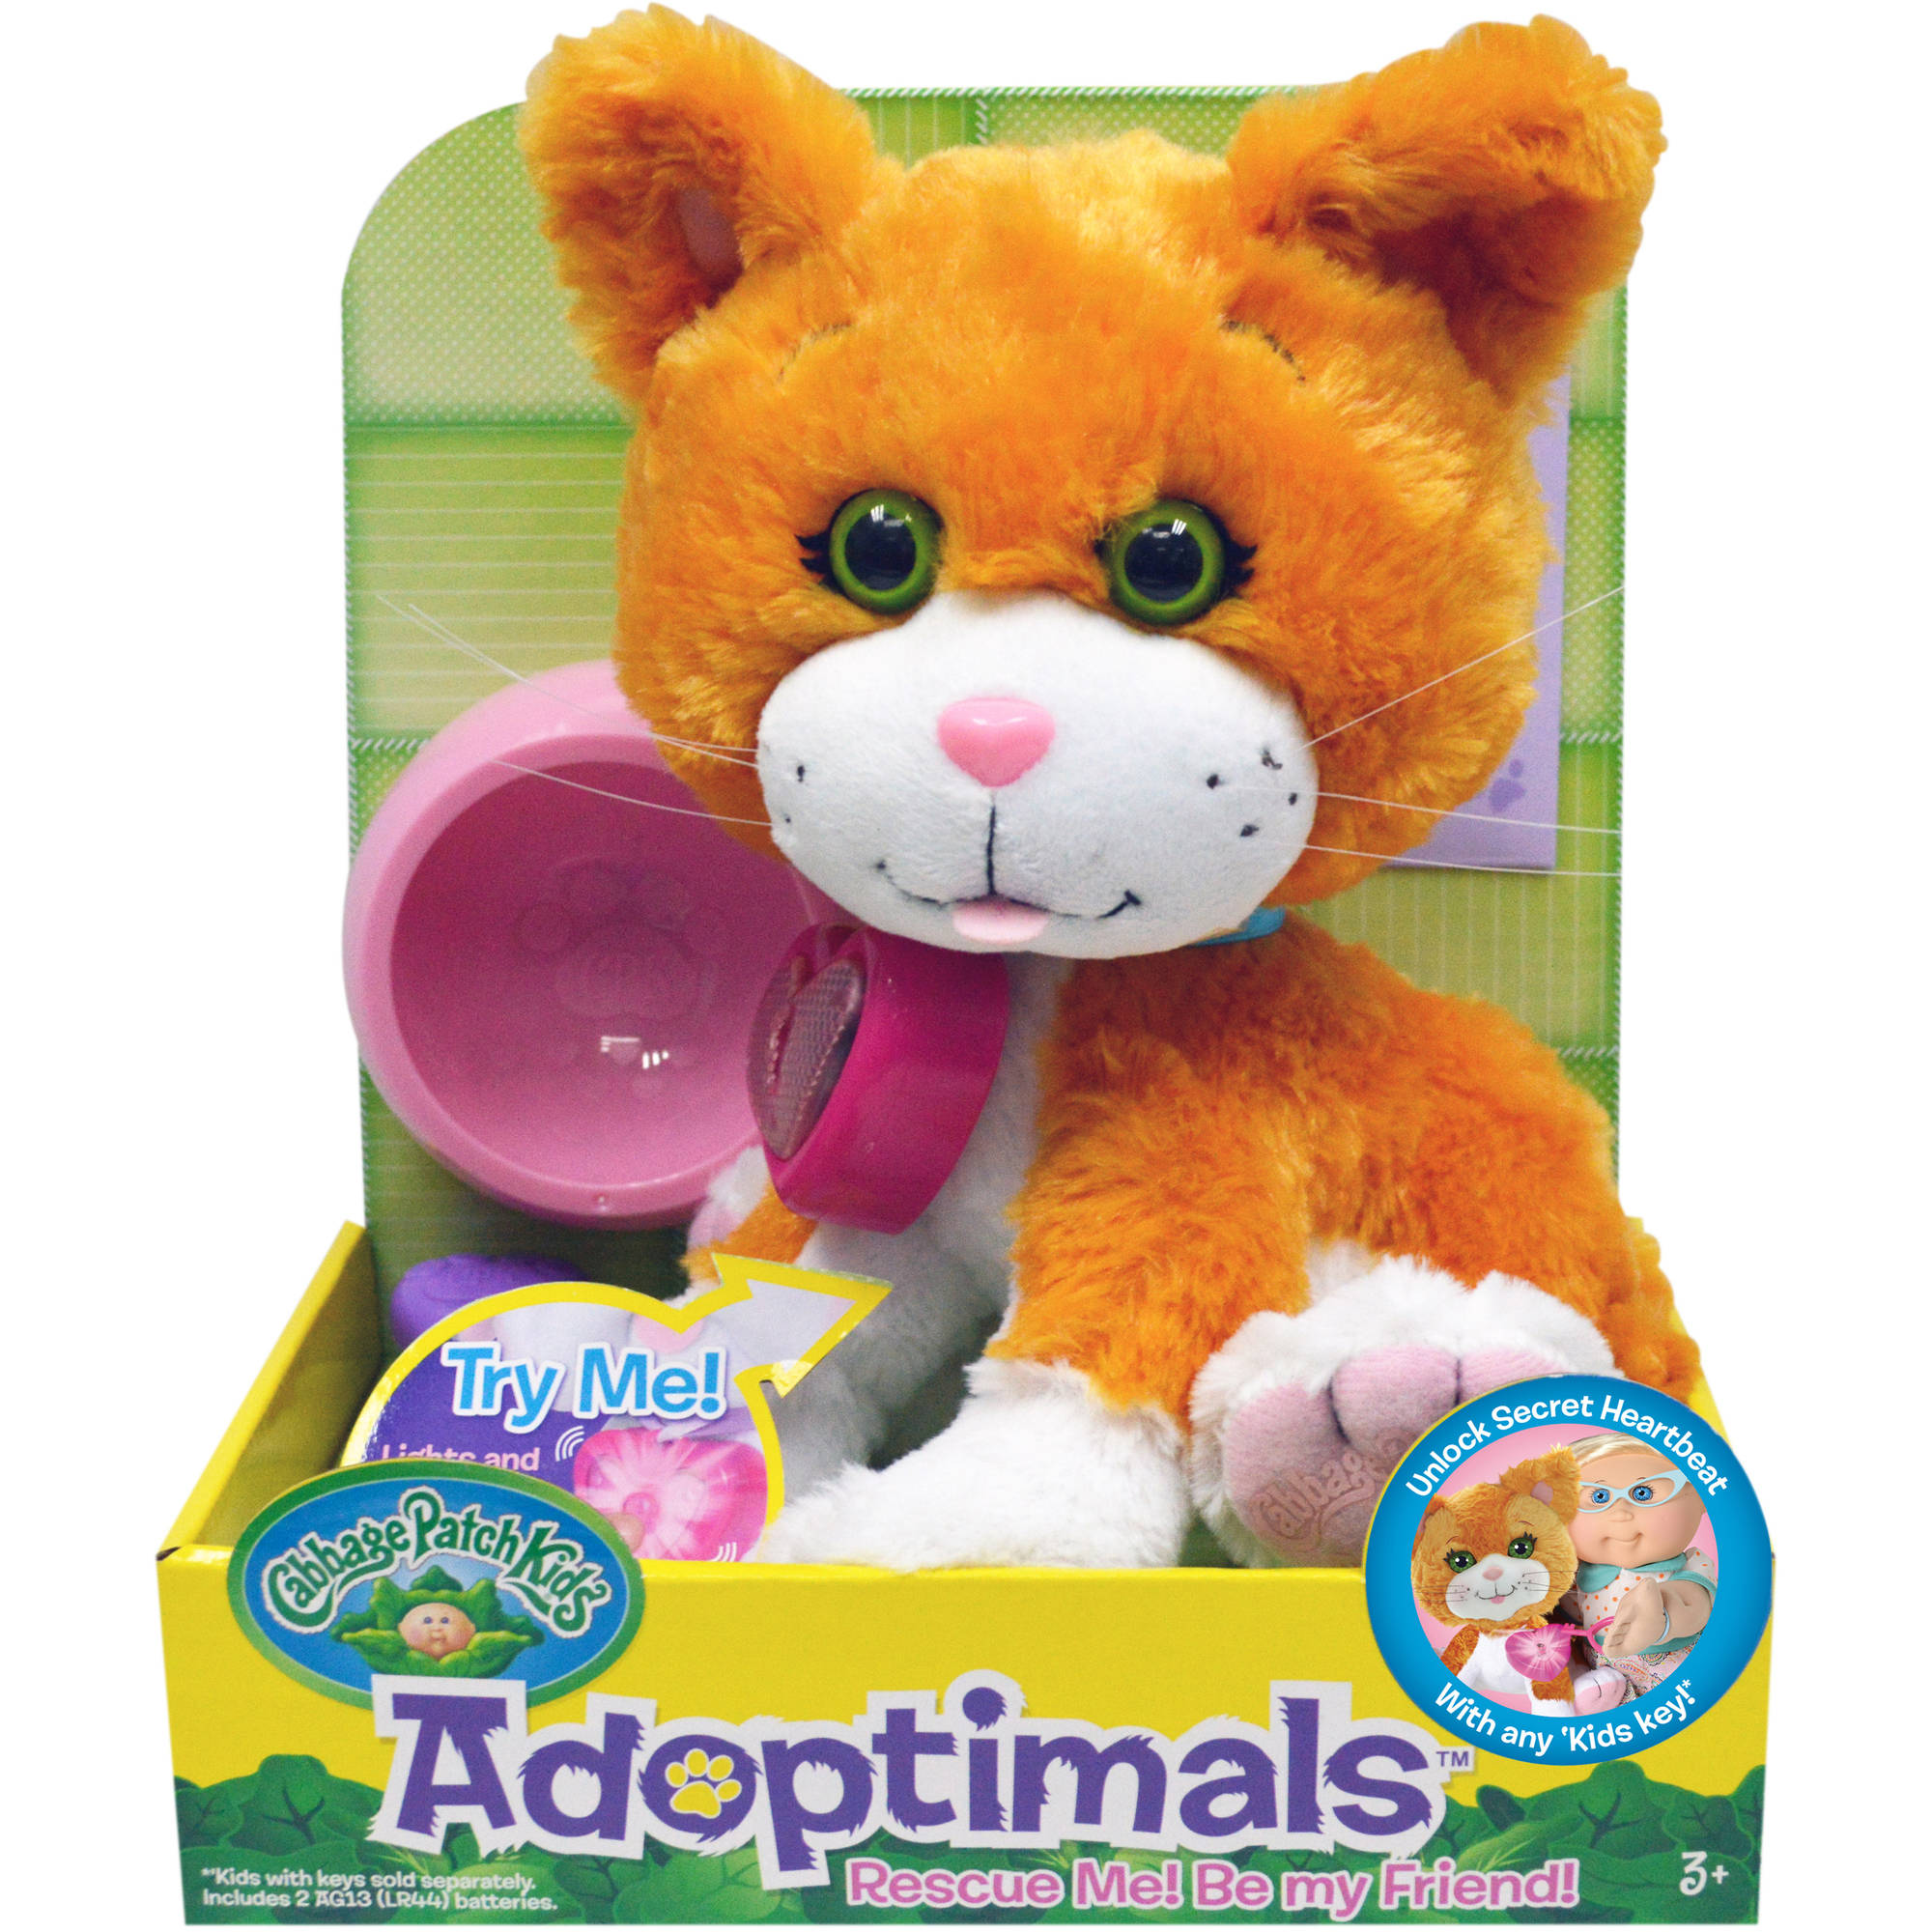 Cabbage Patch Kids Adoptimals, Tabby Kitty by Wicked Cool Toys